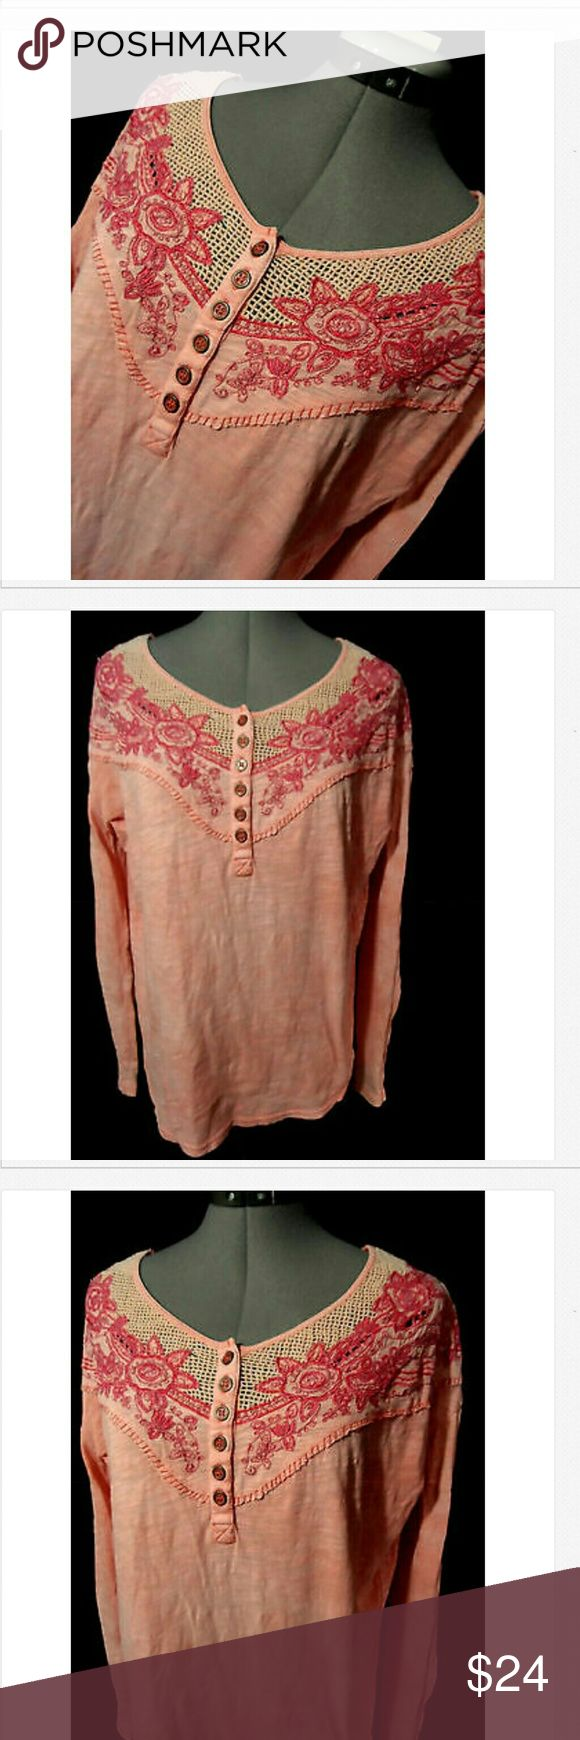 """FREE PEOPLE Crochet Henley Top XS Pink oversized Individual monitors may display slightly different colors or hues...   FREE PEOPLE Henley T-shirt  TAG SIZE: XS BUST: 46"""" LENGTH: 25"""" from nape down the back  Floral embroidered Roses yoke Henley 1/2 button front Scoop neck Lacy crochet inset front Slightly rounded tail Long sleeve Peachy Pink in color Light wash and wear, there is a pinhole in the back of the neck from a tag. Free People Tops Tees - Long Sleeve"""